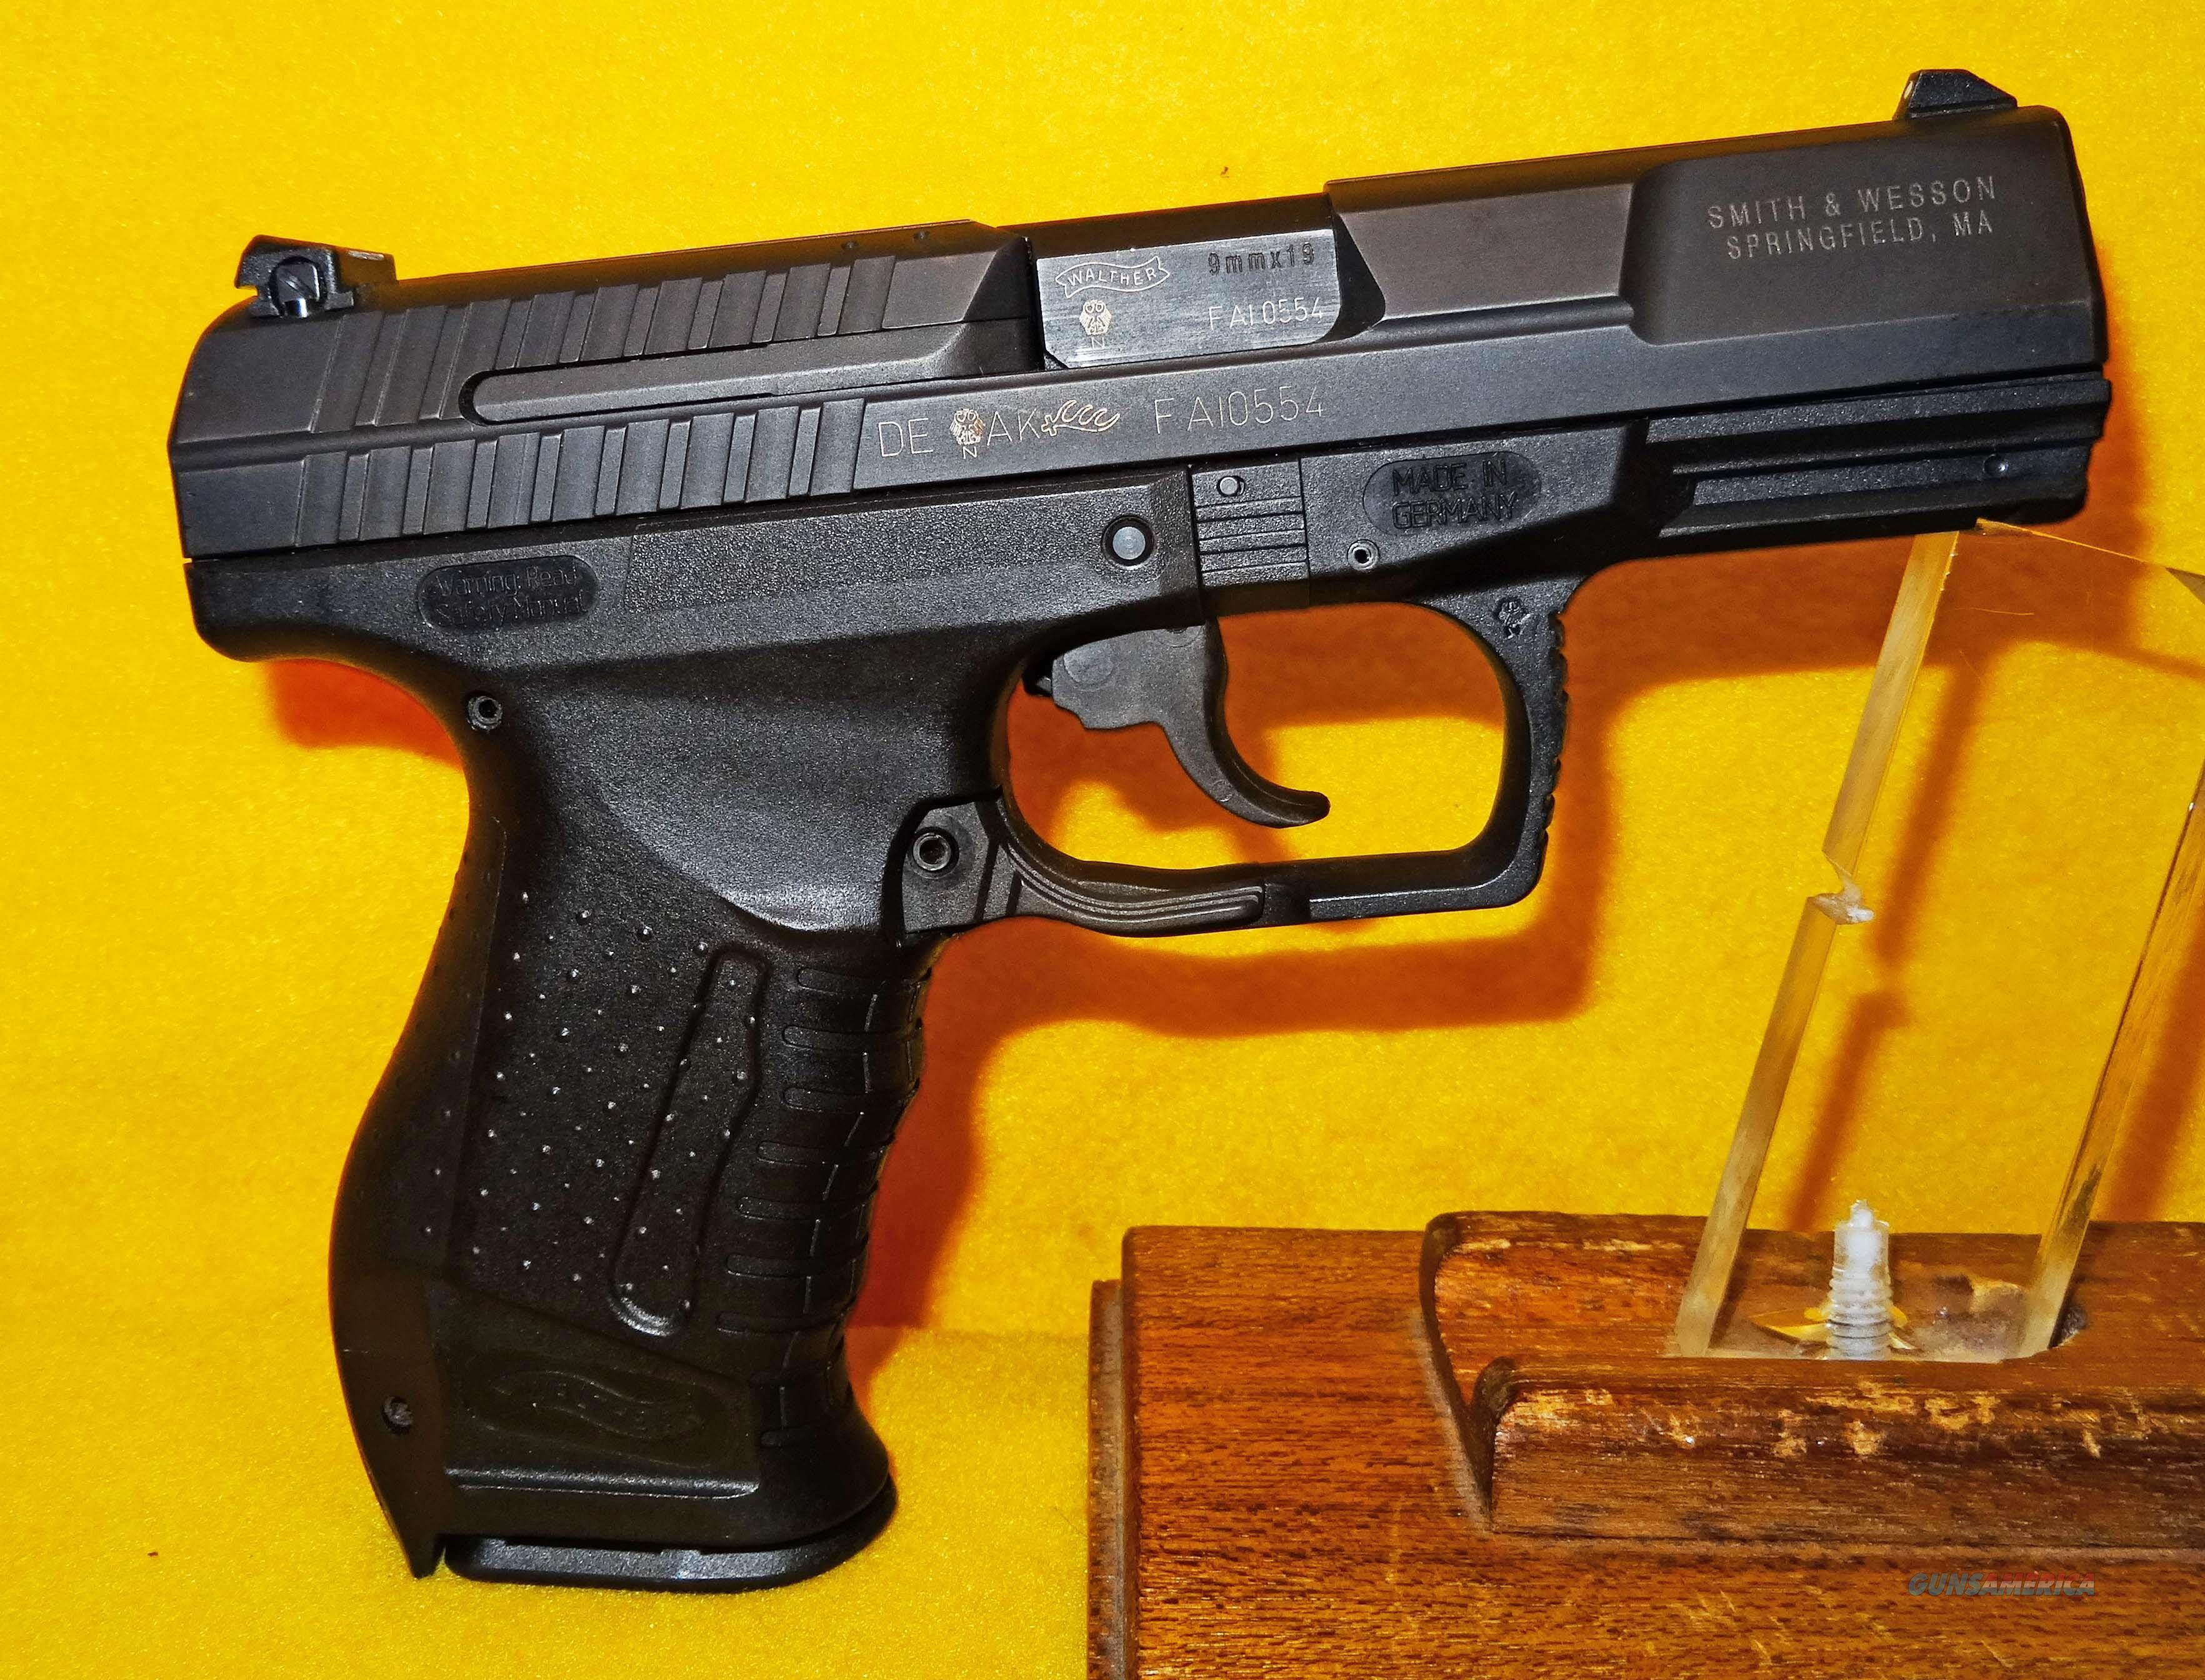 WALTHER P99AS  Guns > Pistols > Walther Pistols > Post WWII > P99/PPQ